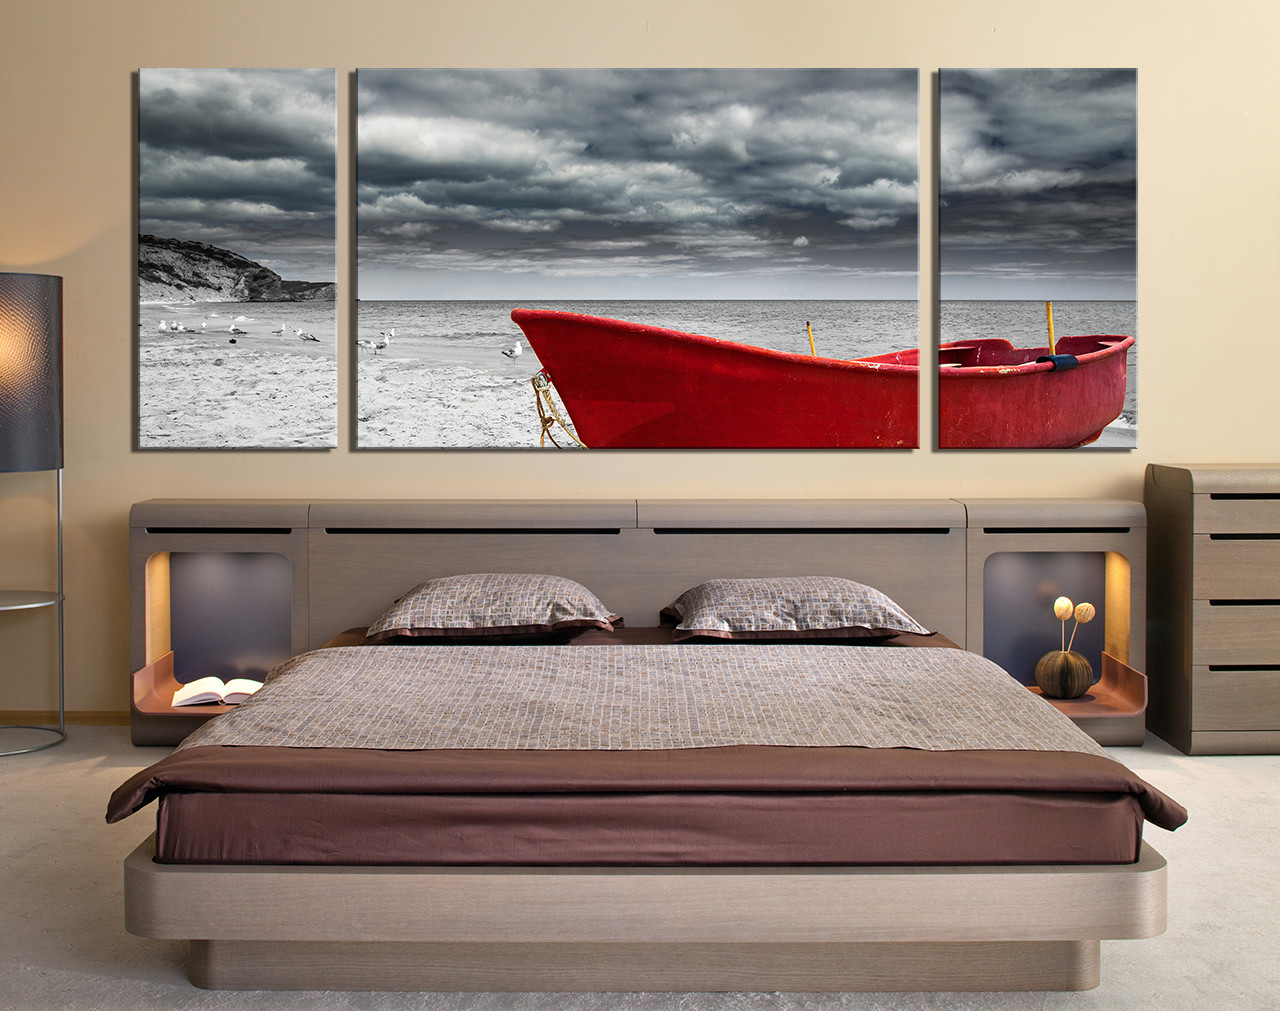 Red Black And Gray Wall Decor: 3 Piece Wall Decor, Panoramic Multi Panel, Red Boat Large